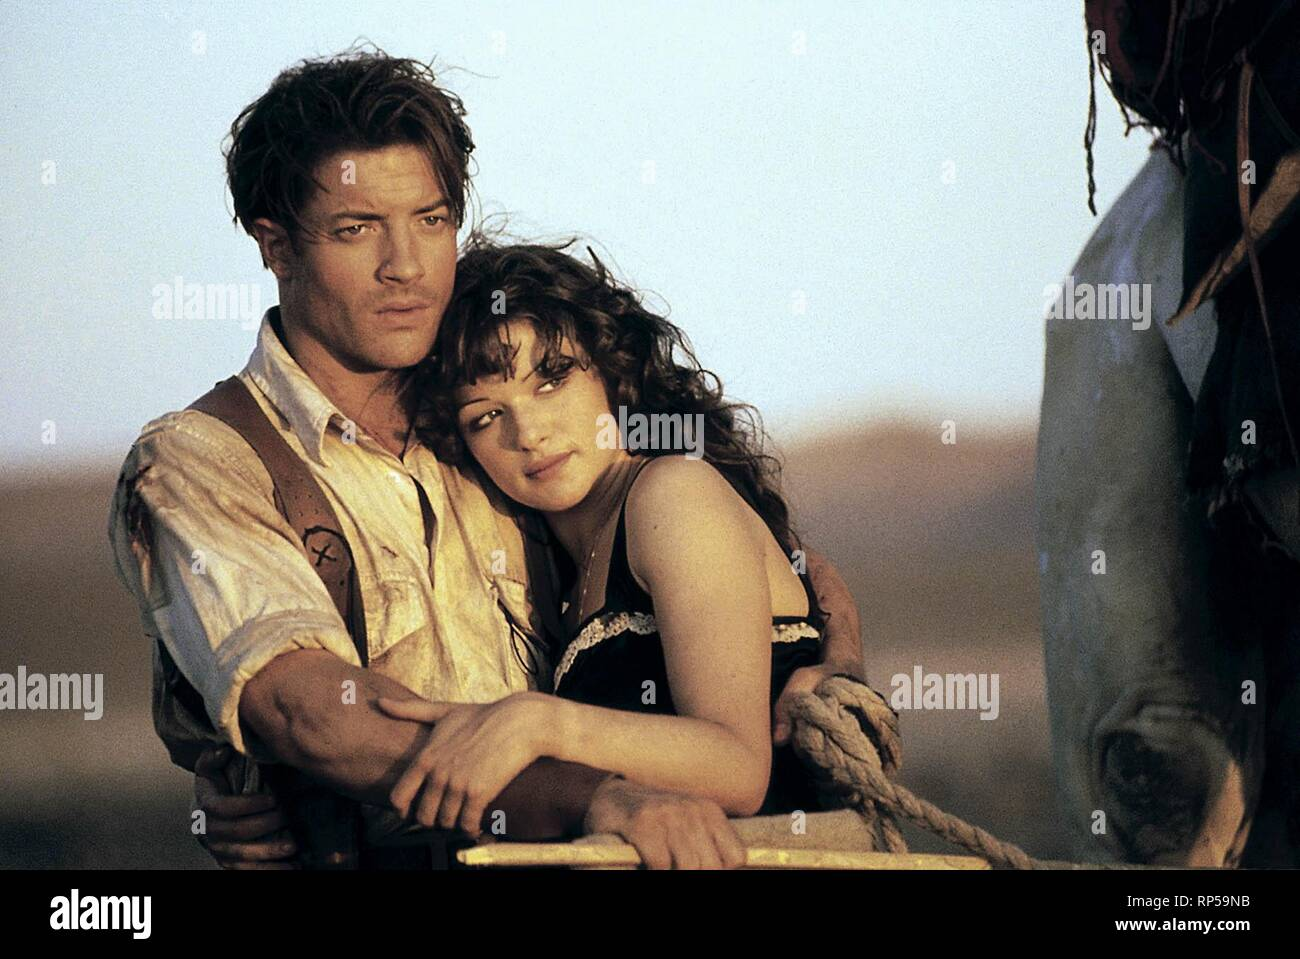 The Mummy 1999 High Resolution Stock Photography And Images Alamy